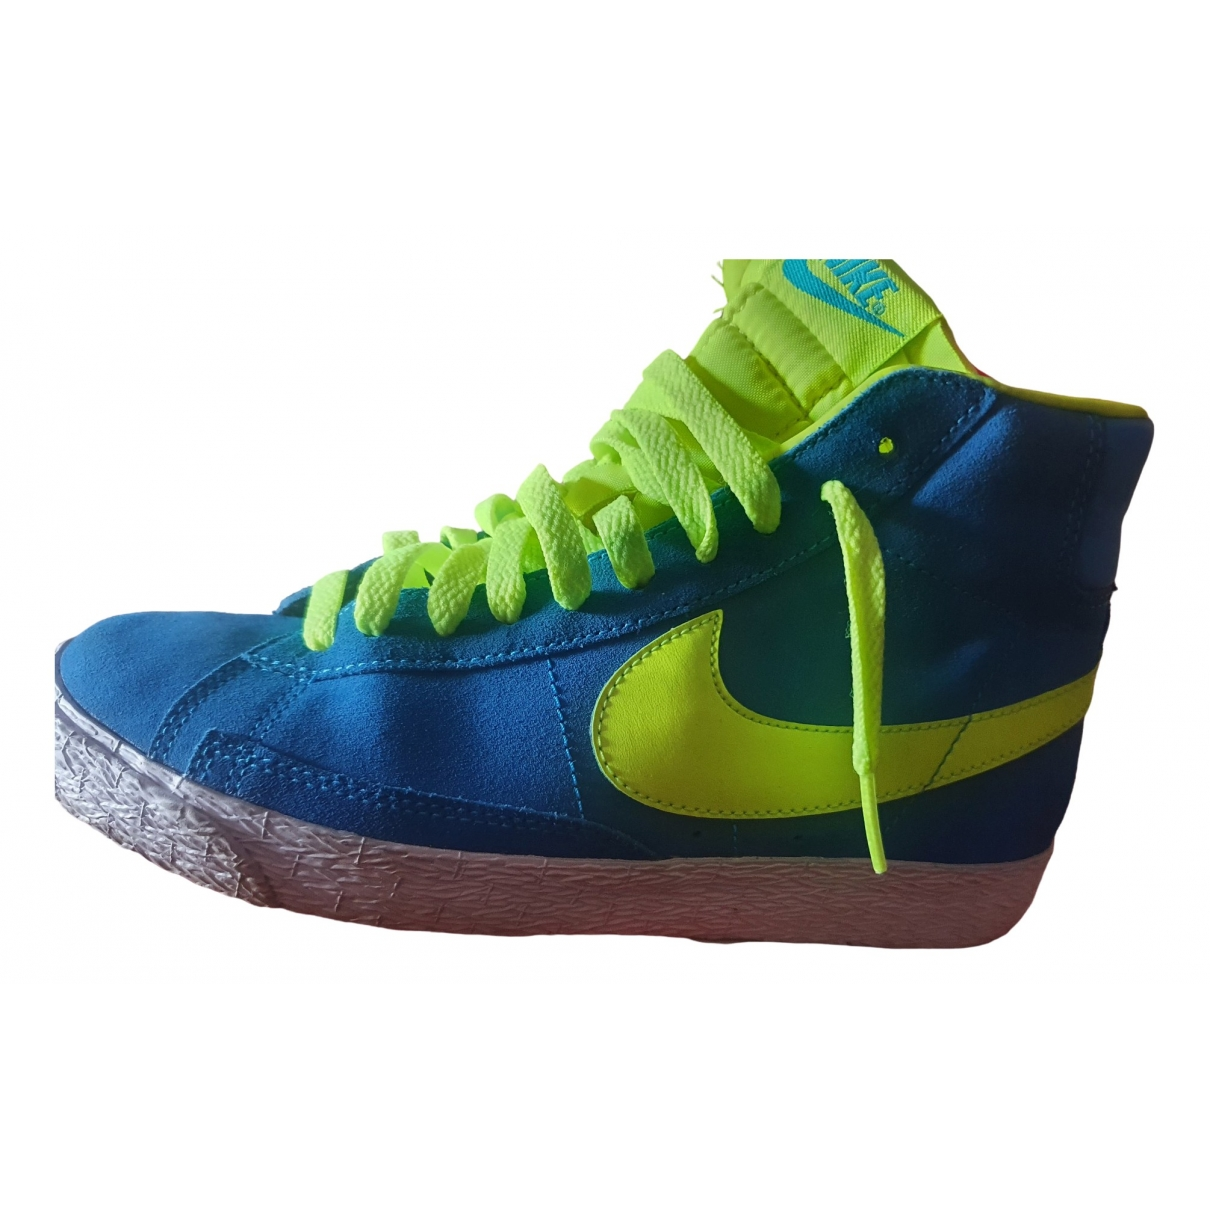 Nike Blazer Blue Suede Trainers for Women 37.5 EU